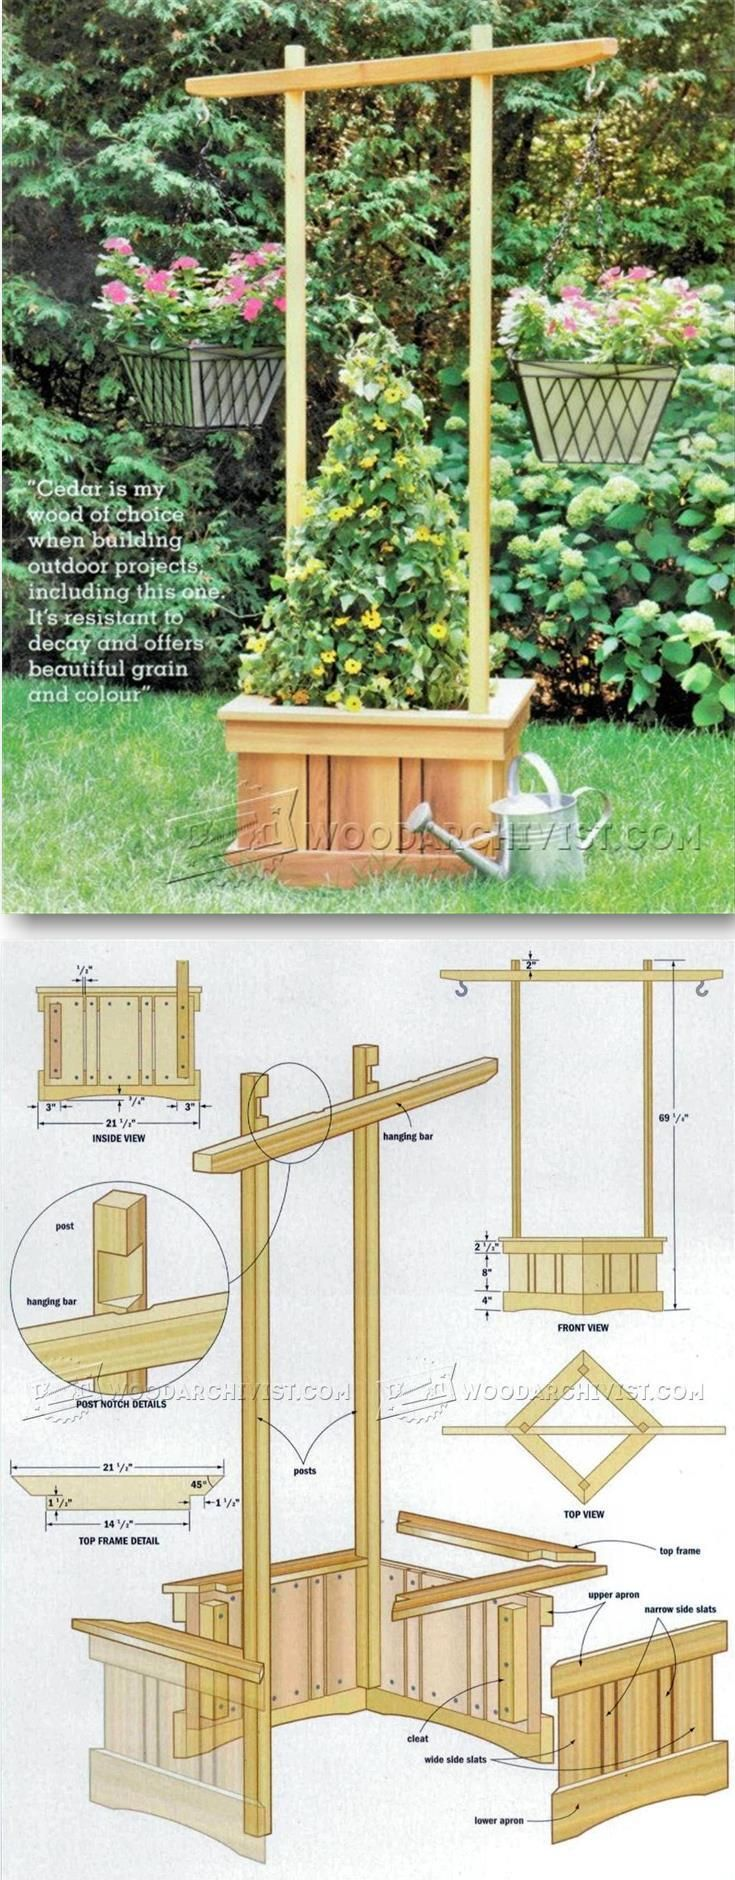 623 best images about planters on pinterest wheelbarrow for Garden planter plans